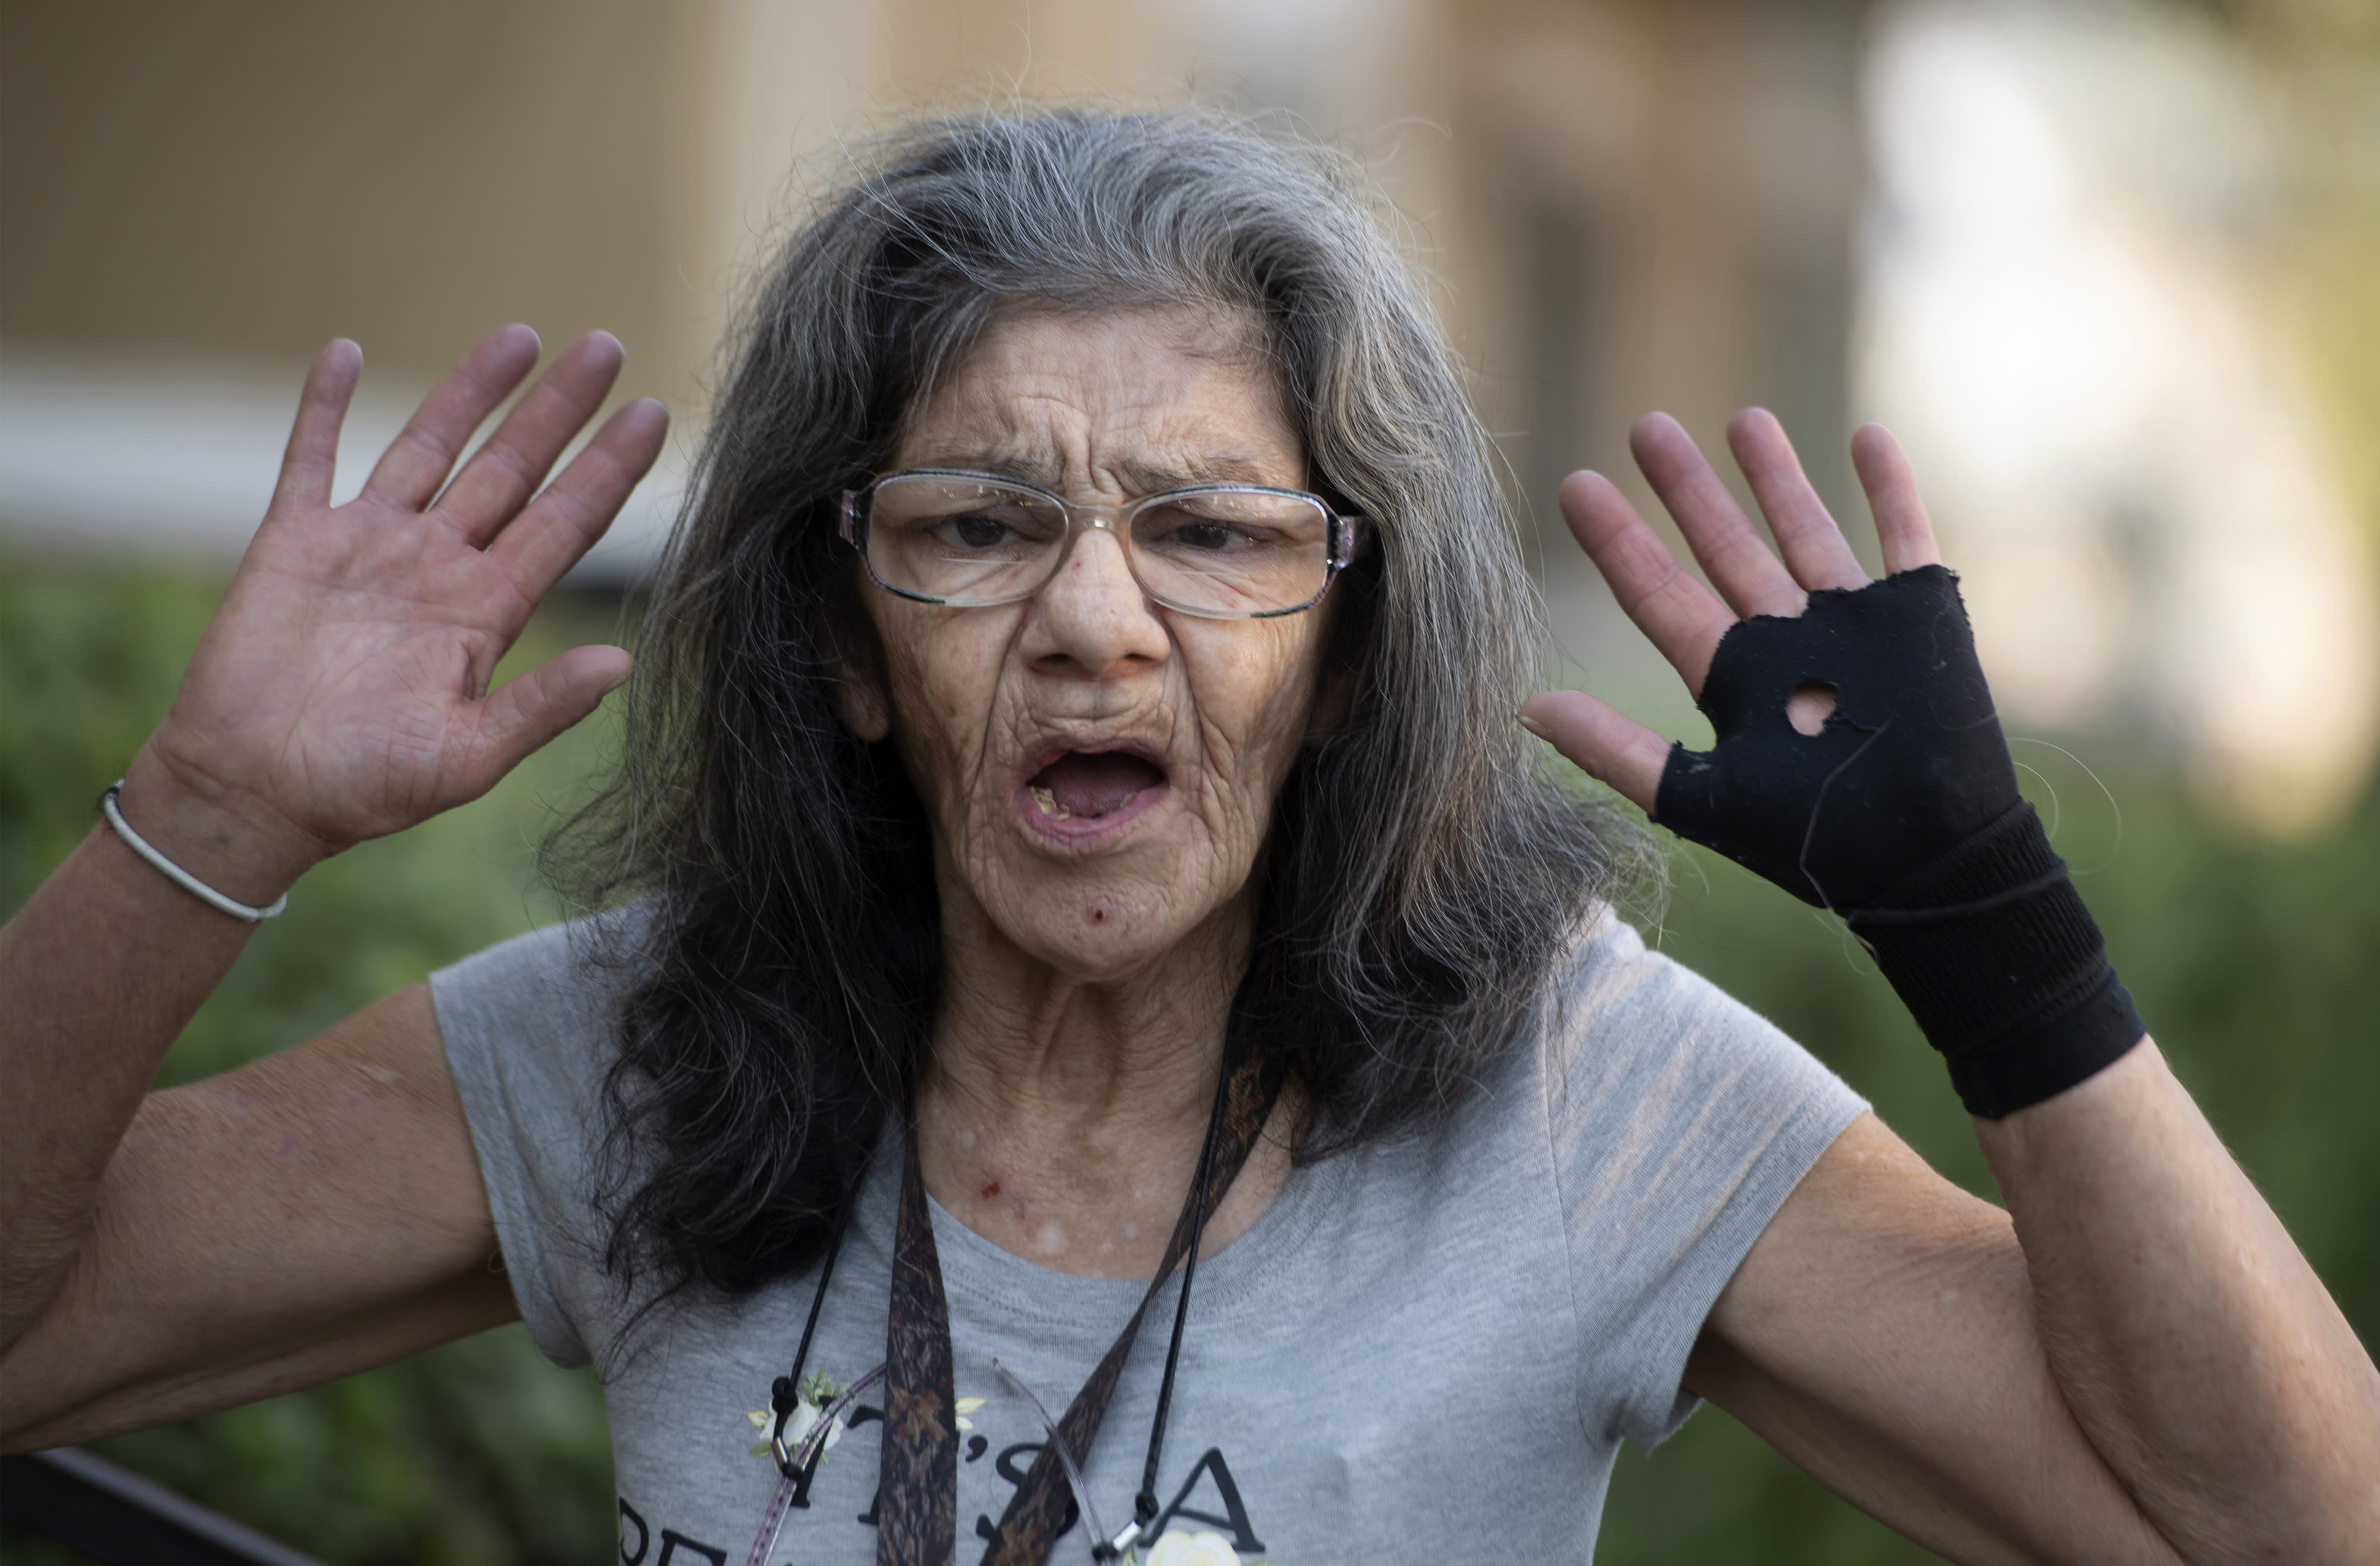 """""""I'm the master of assassination,"""" Lorenza Marrujo, 67, says when asked about her martial arts skills at her Fontana, Calif., apartment home Wednesday, Sept. 30, 2020. Marrujo, who likes to be called """"Lady Ninja"""" and has a black belt in ju jitsu, said she was in her third-floor apartment Monday when she heard screams coming from a neighbor's apartment and went to investigate. There, she said, she found another neighbor attacking her 87-year-old friend, Elizabeth McCray. Marrujo came to her rescue. (Cindy Yamanaka/The Orange County Register/SCNG via AP)"""